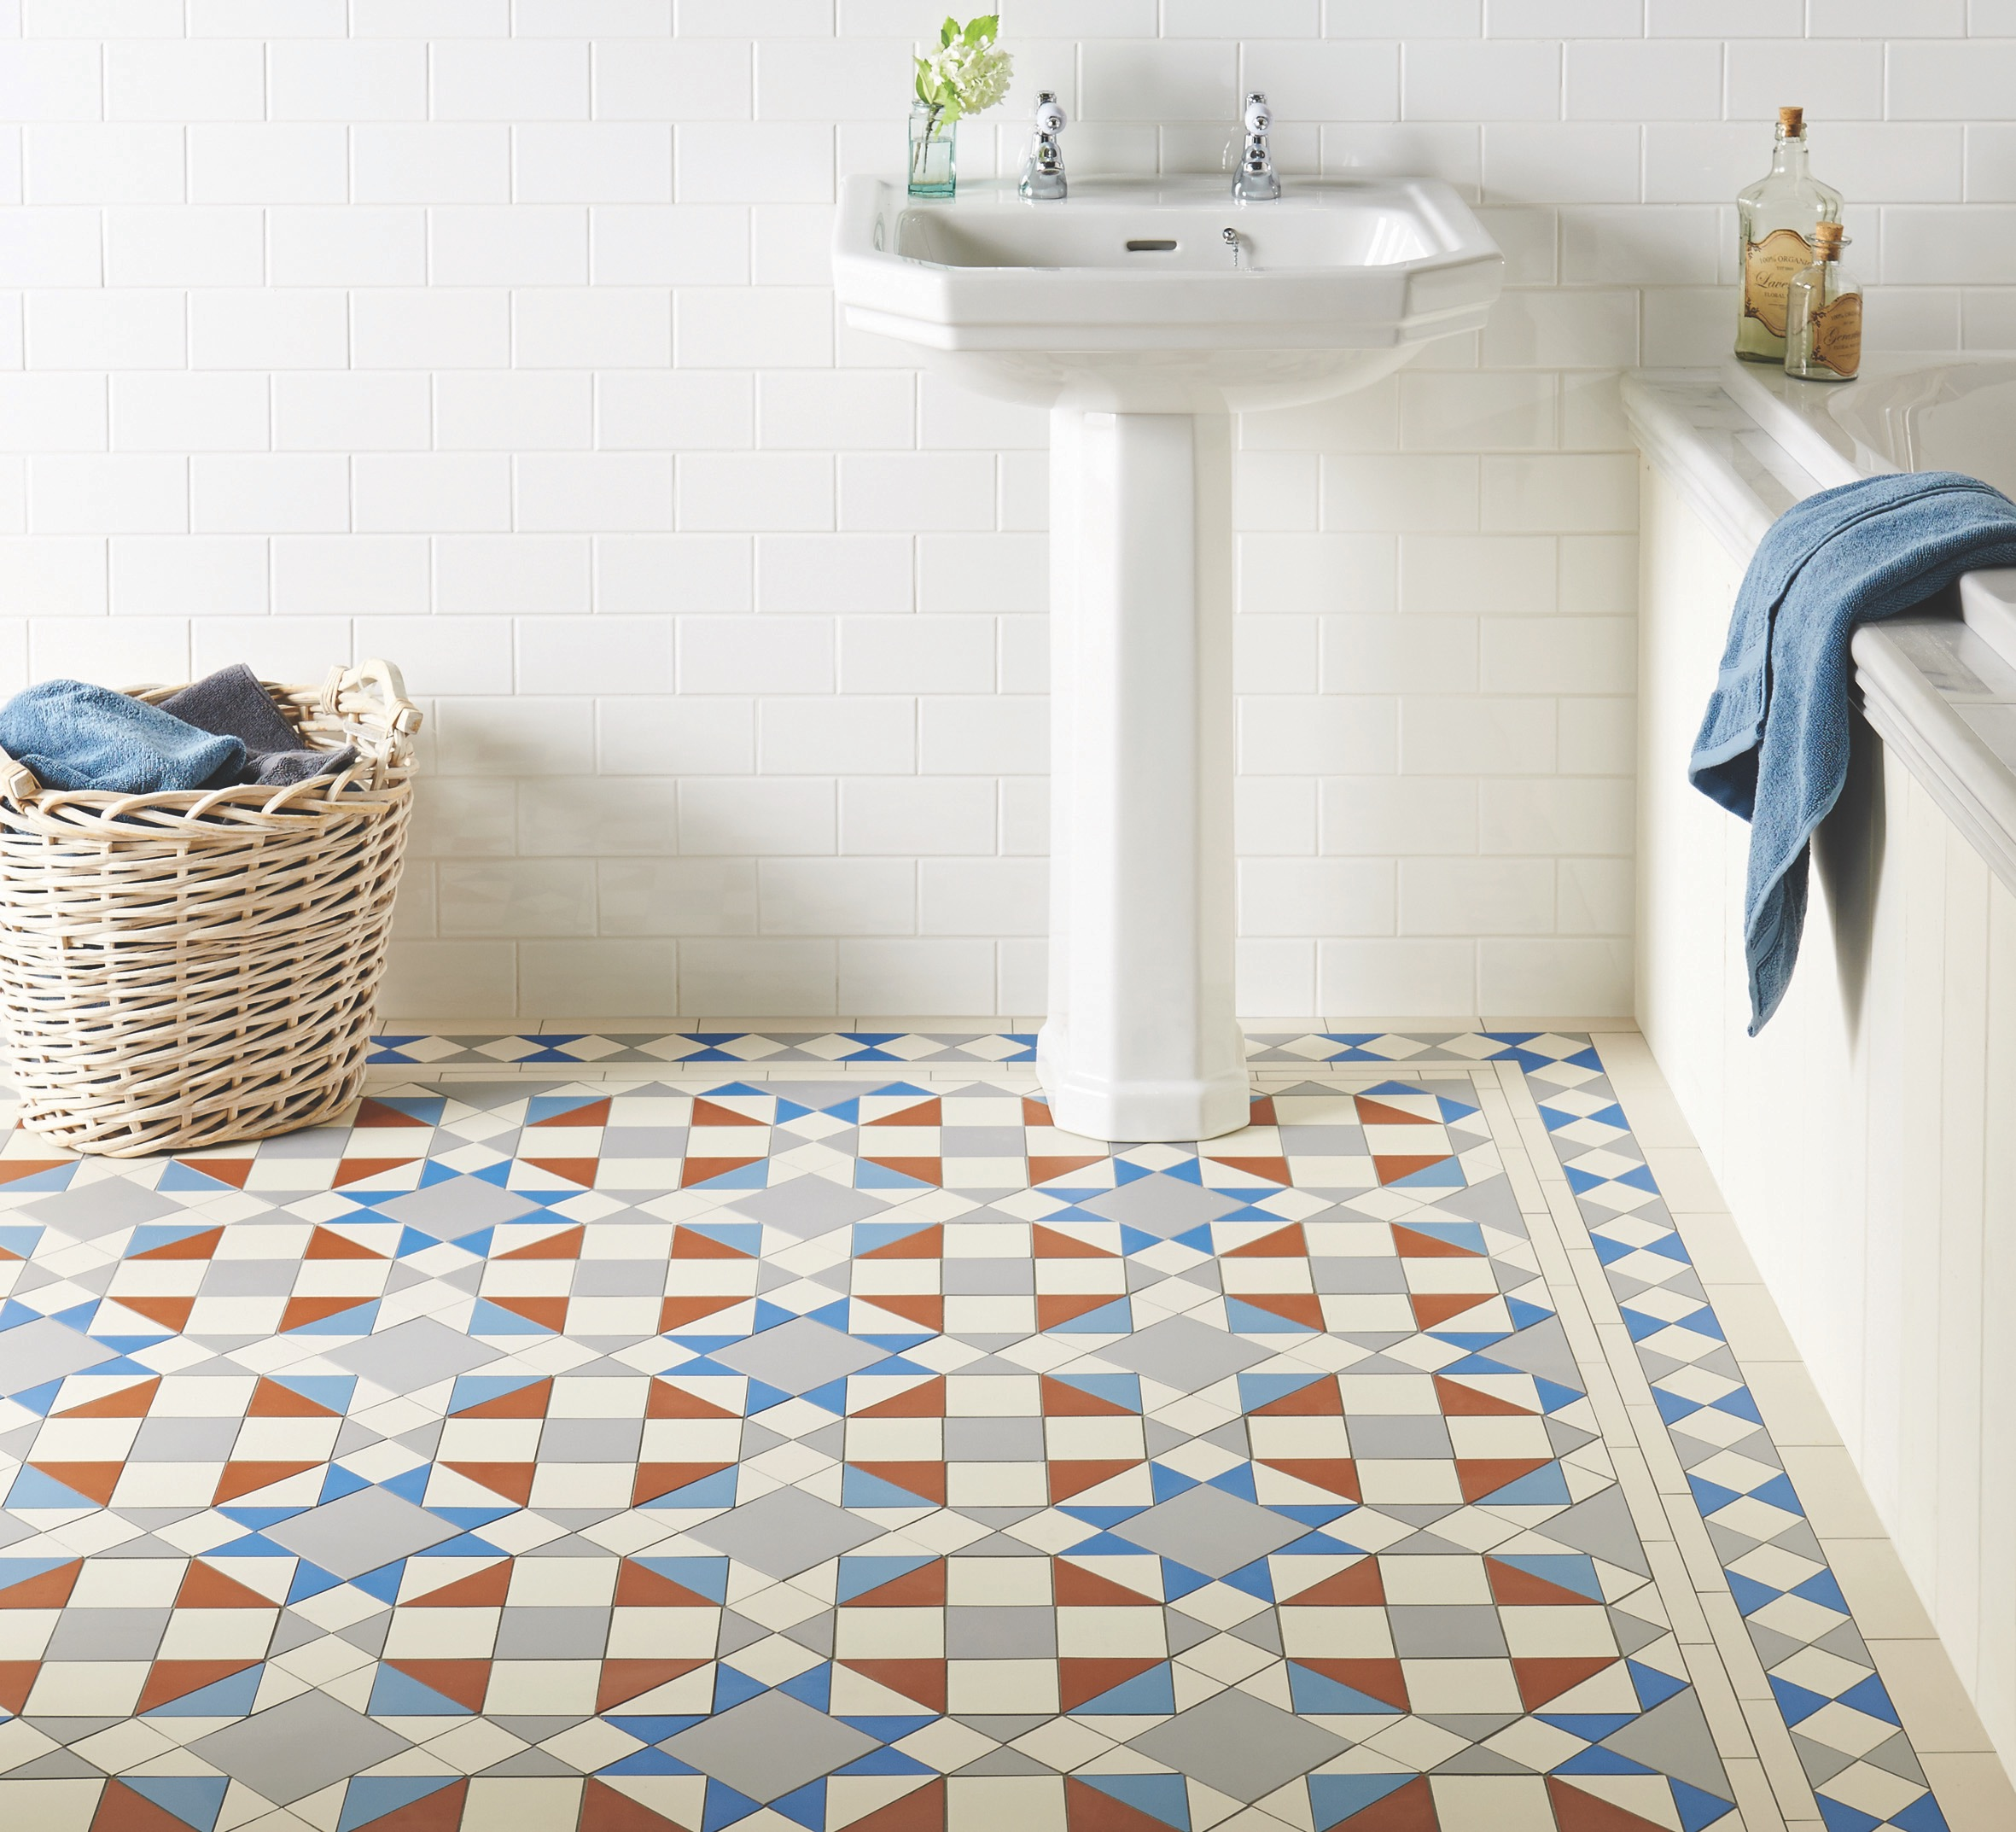 Original Style - VFT - Eltham pattern with modified Kingsley border in Grey, Red, Dover White, Pugin Blue and Blue 2.jpg